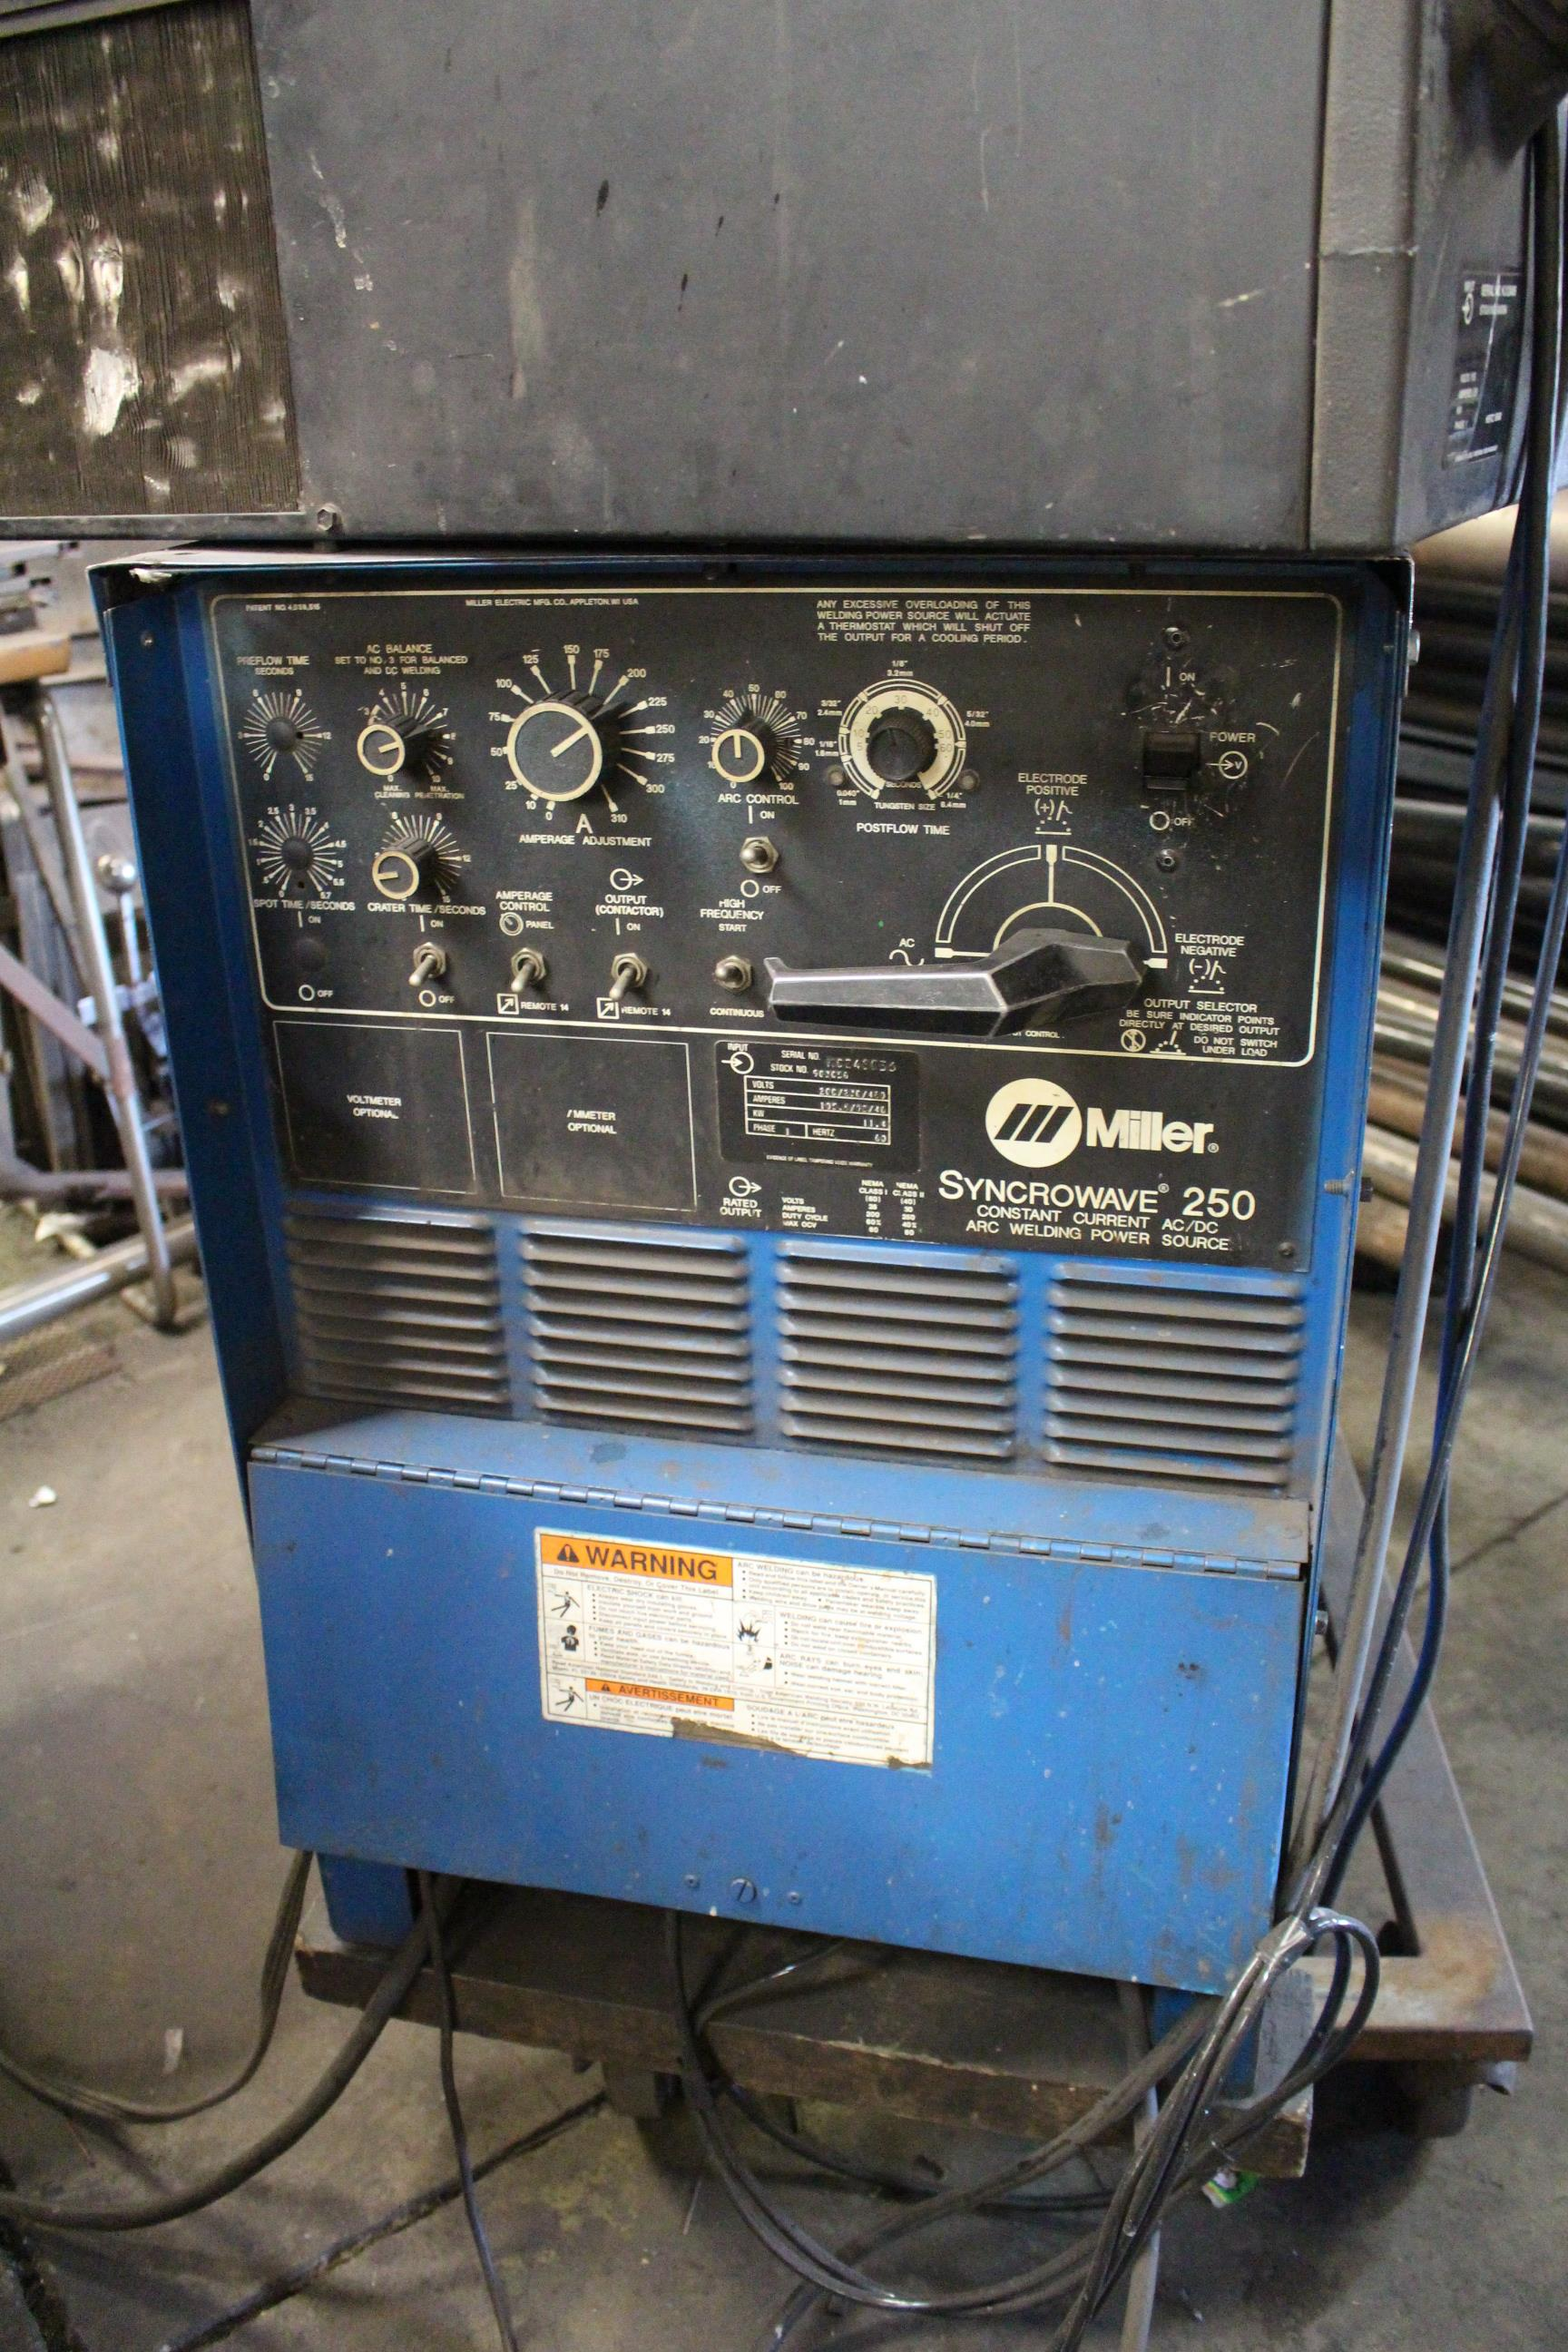 Lot 0A - SHOP PHOTOS OF MACHINERY, TRUCKS, FORKLIFTS & RELATED ITEMS